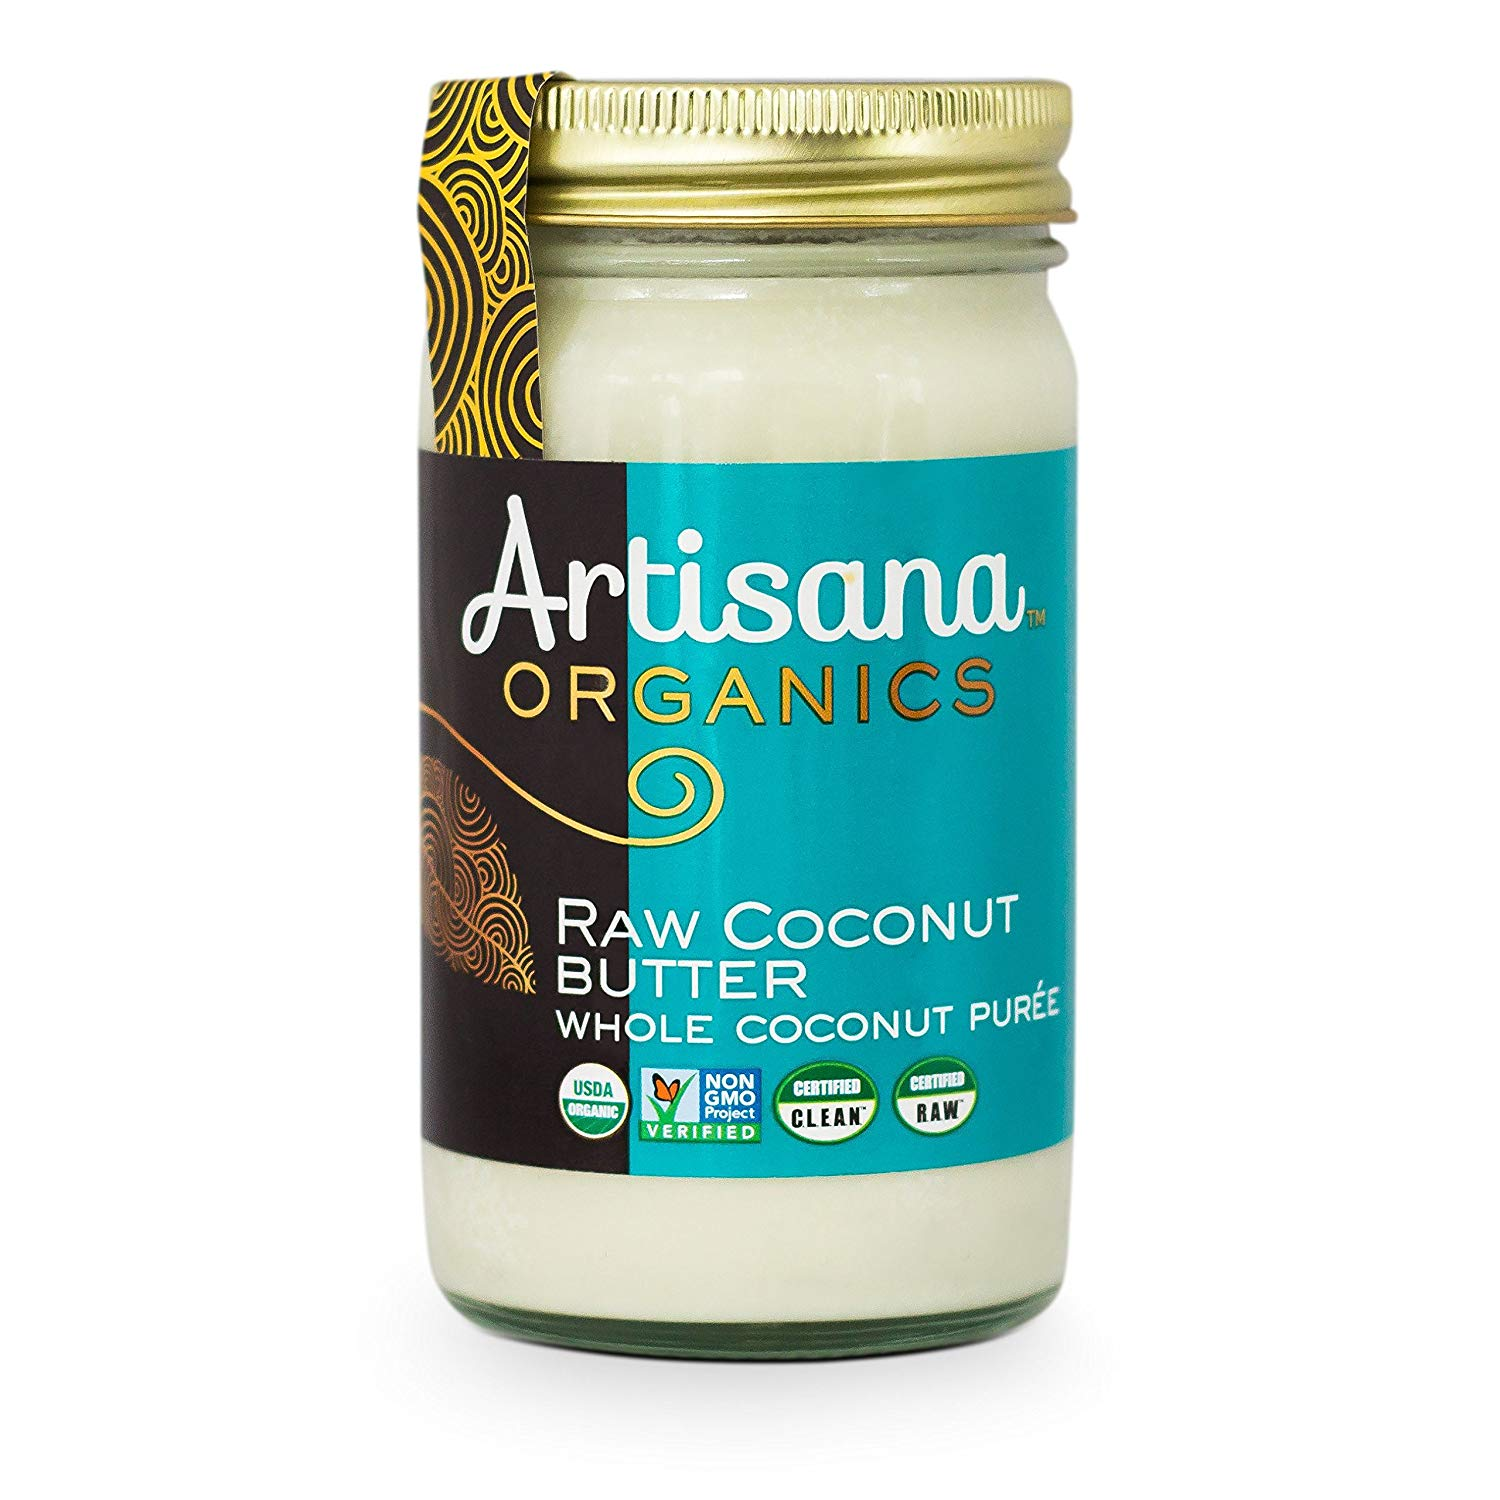 Organic Raw Coconut Butter - liquid goal and a great substitute for oil in baking